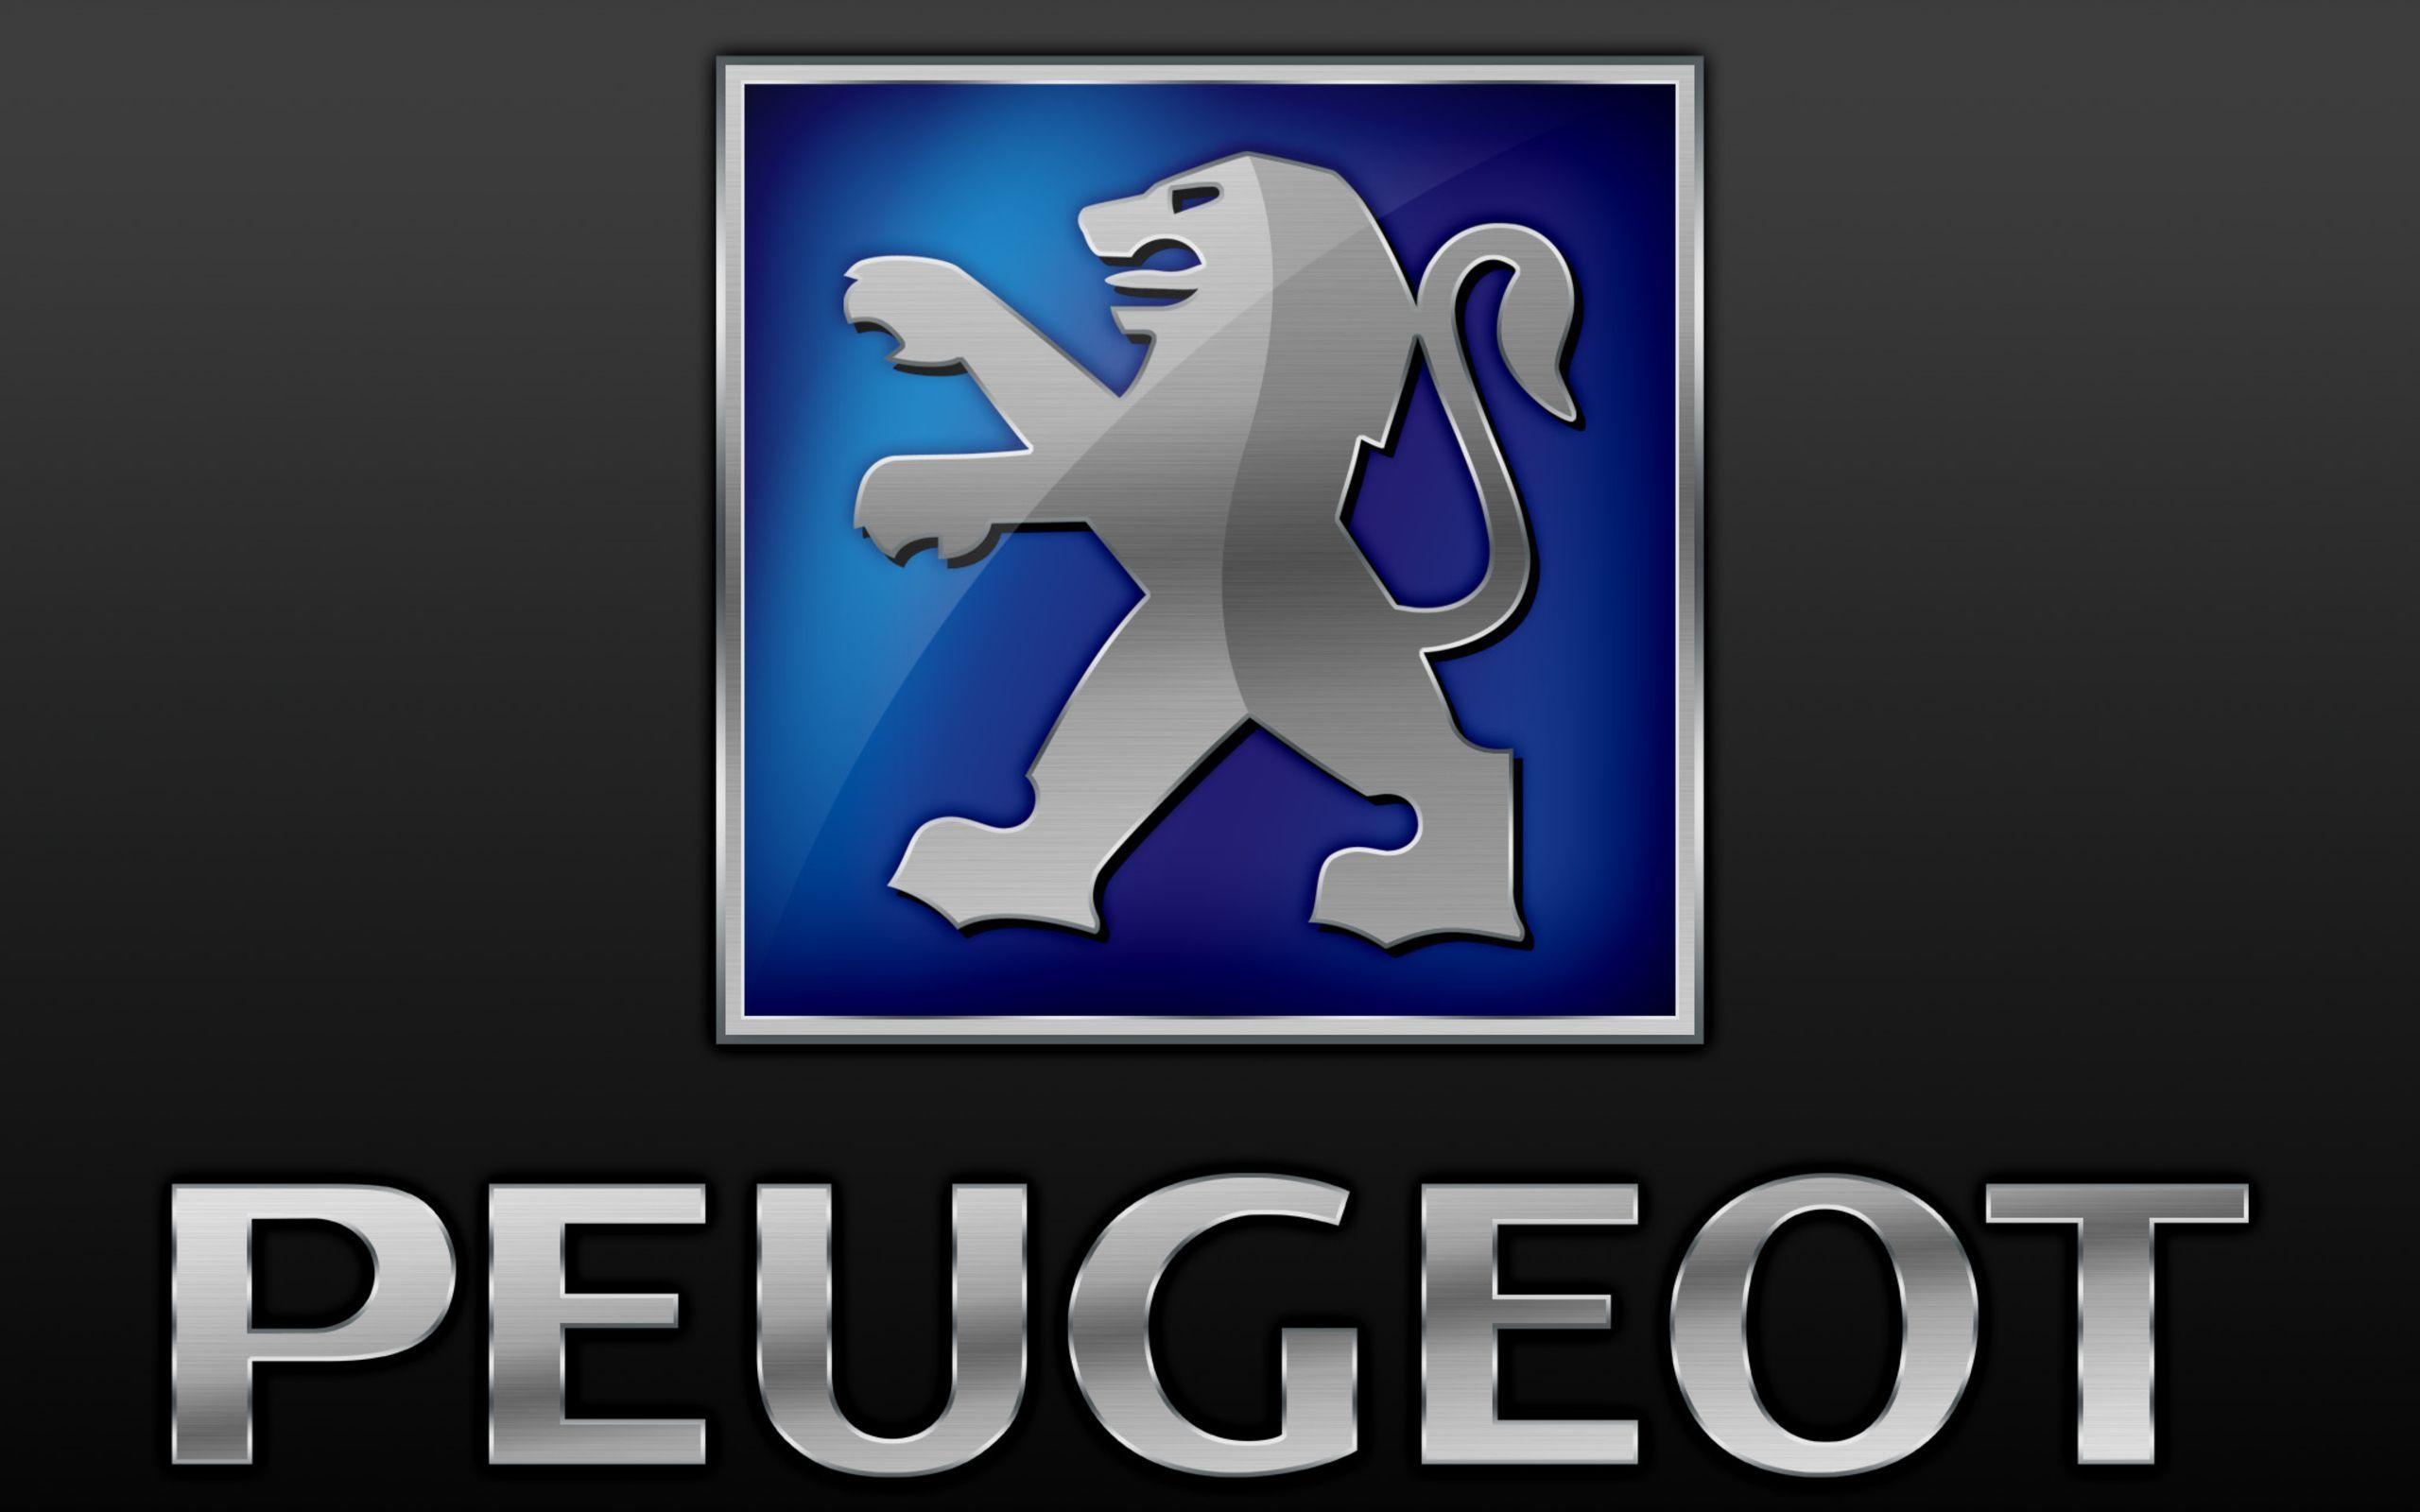 Peugeot Logo, Peugeot Car Symbol Meaning and History